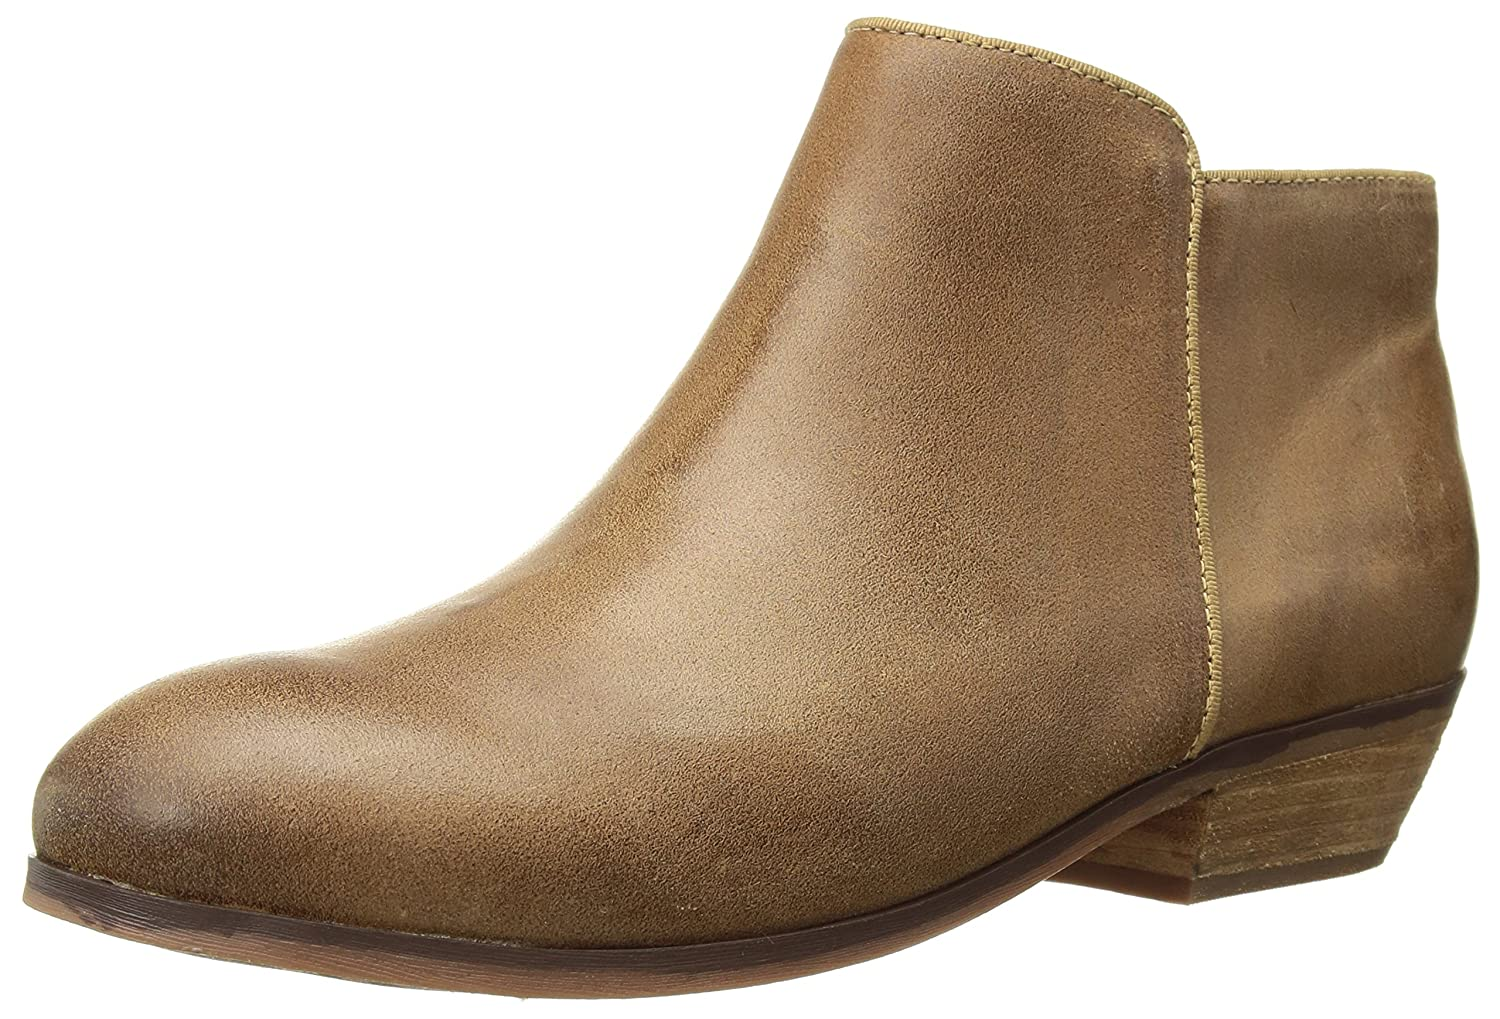 SoftWalk Women's Rocklin Chelsea Boot B01N0ZFWAF 9 W US|Sand